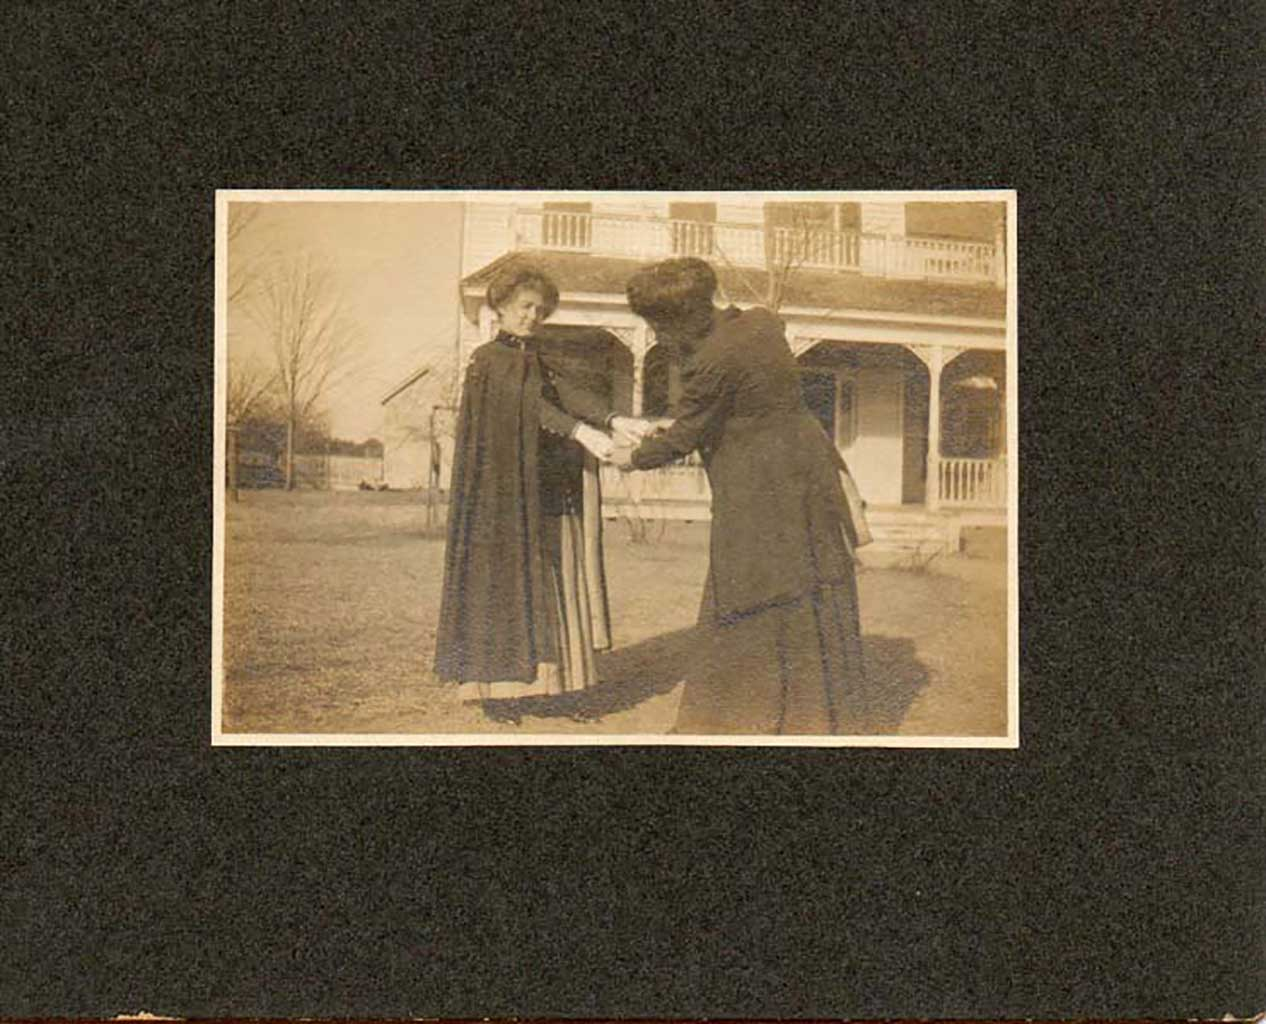 madge-goodson-and-unknow-1908-in-front-of-gilliam-home-img046